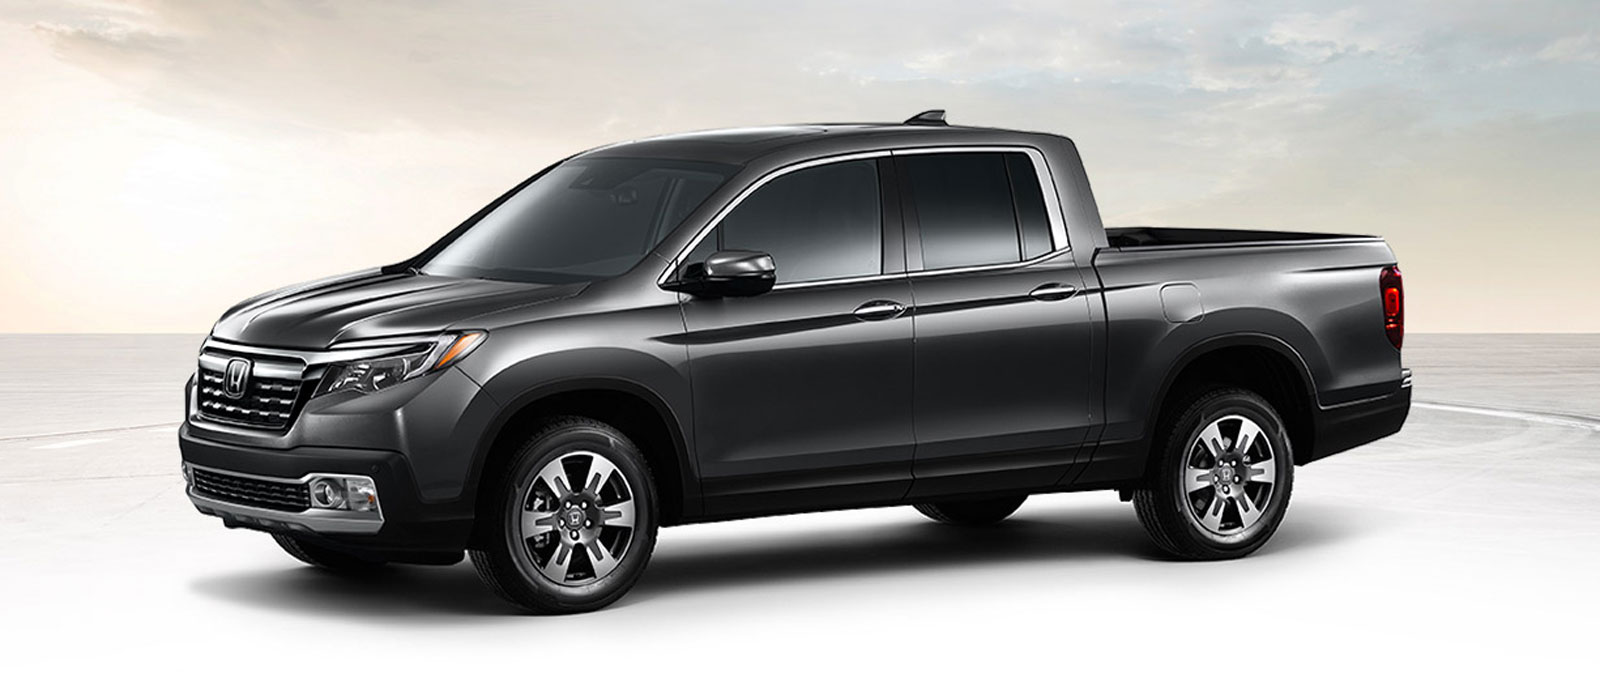 the new 2017 honda ridgeline delights raynham plymouth drivers. Black Bedroom Furniture Sets. Home Design Ideas